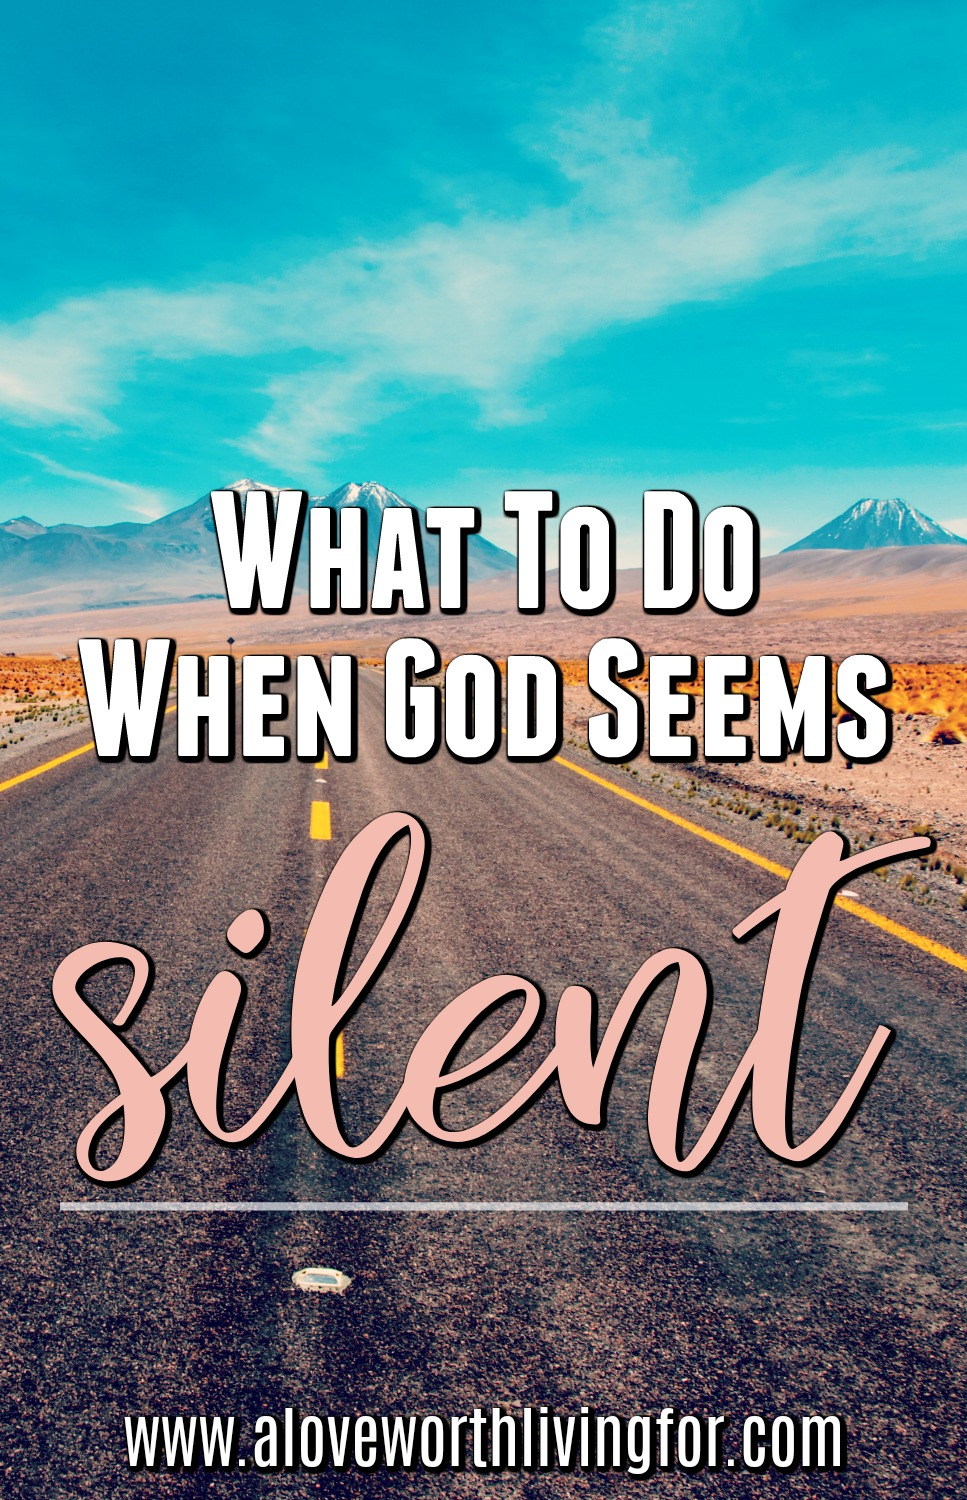 What do you do in seasons when God seems silent? How do you foster intimacy and connection with God when He seems so far away? How do we remain faithful when we feel a little abandoned. It's simply really. Follow and cling to these three steps.